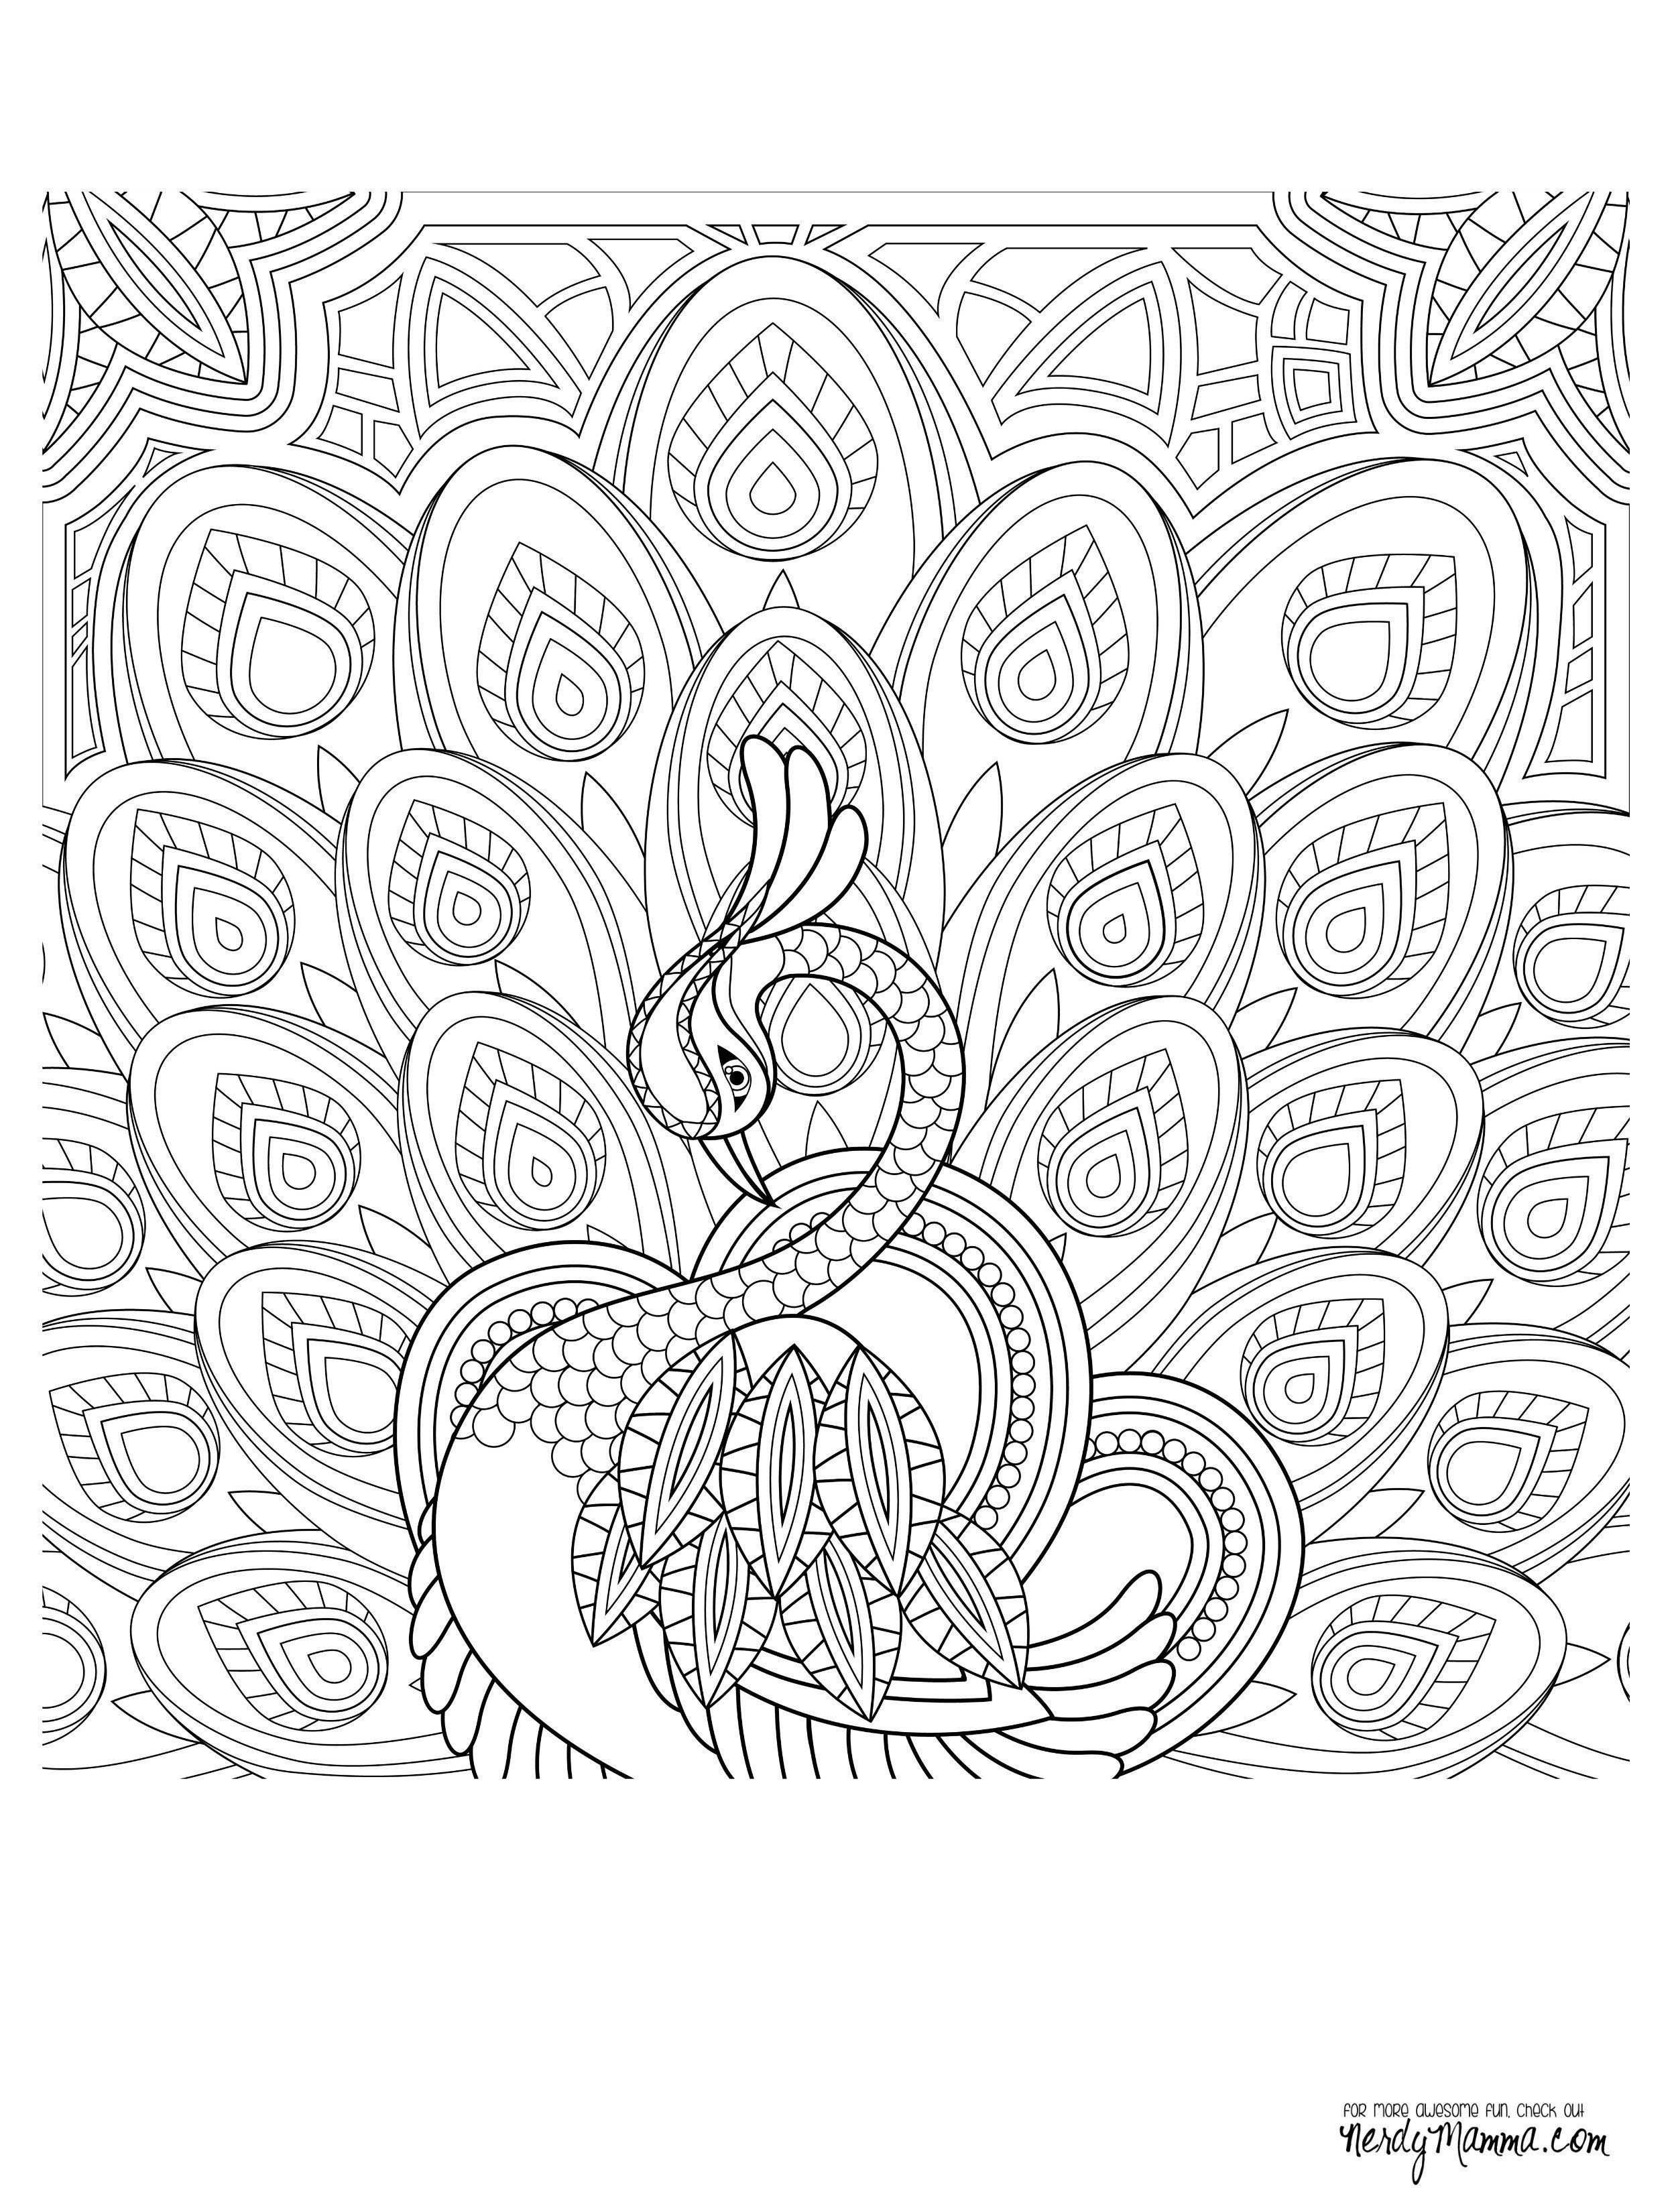 Winter Bilder Zum Ausmalen Neu Mal Coloring Pages Elegant Mal Coloring Pages Fresh Crayola Pages 0d Sammlung